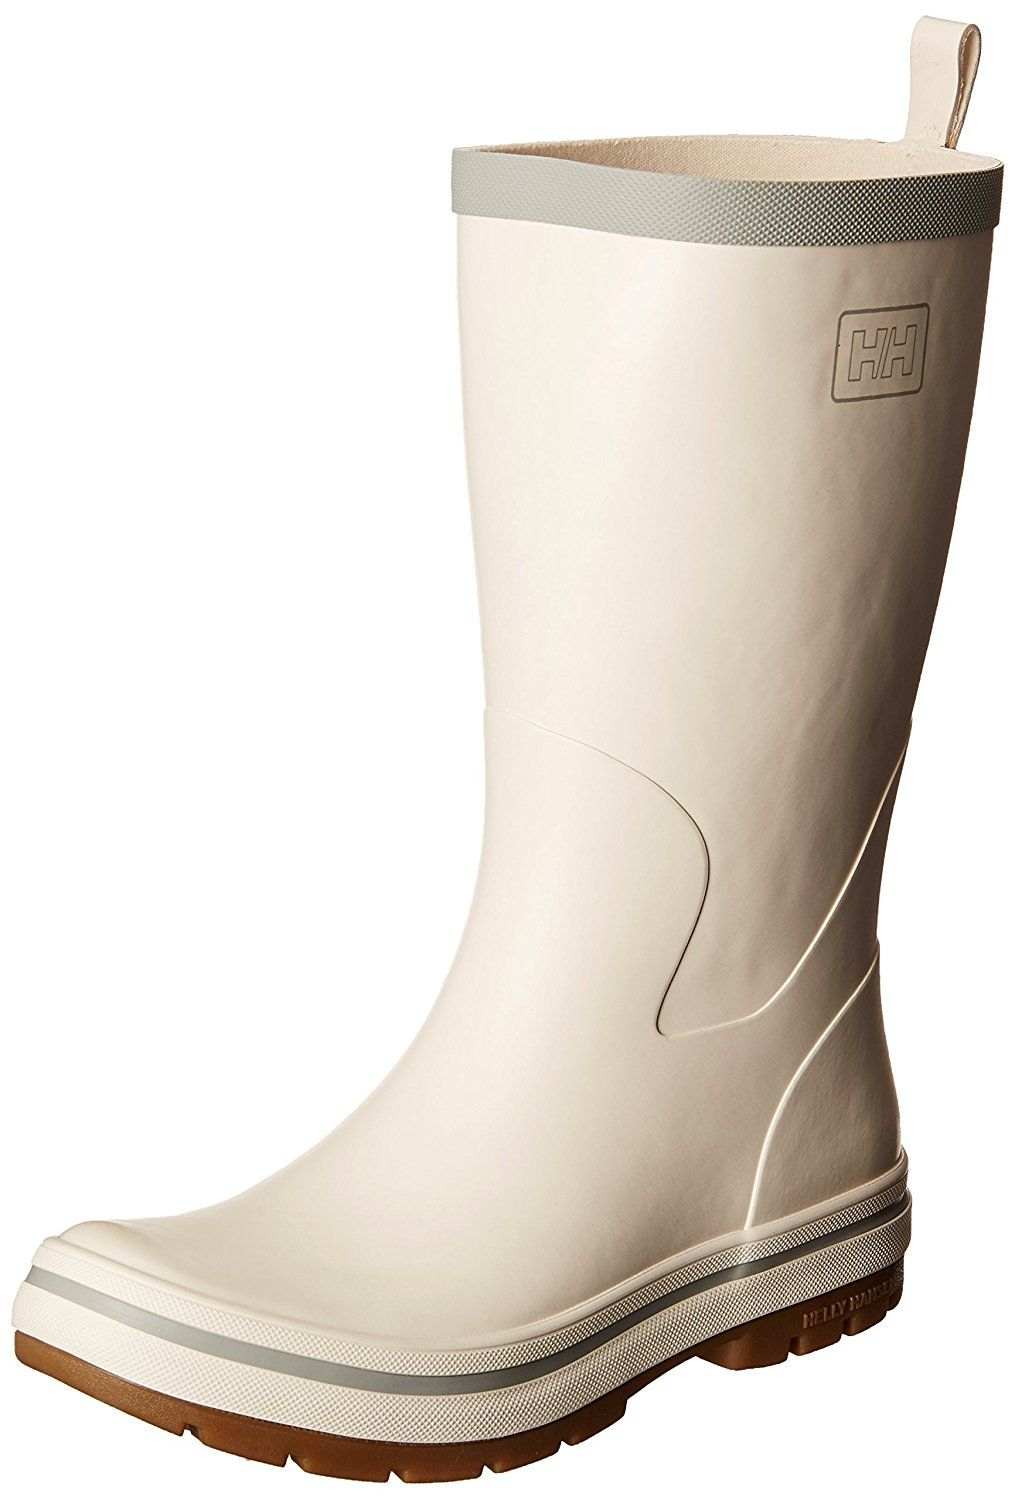 Helly Hansen Women's Midsund 2 Rain Boot ** If you love this, read review now : Rain boots